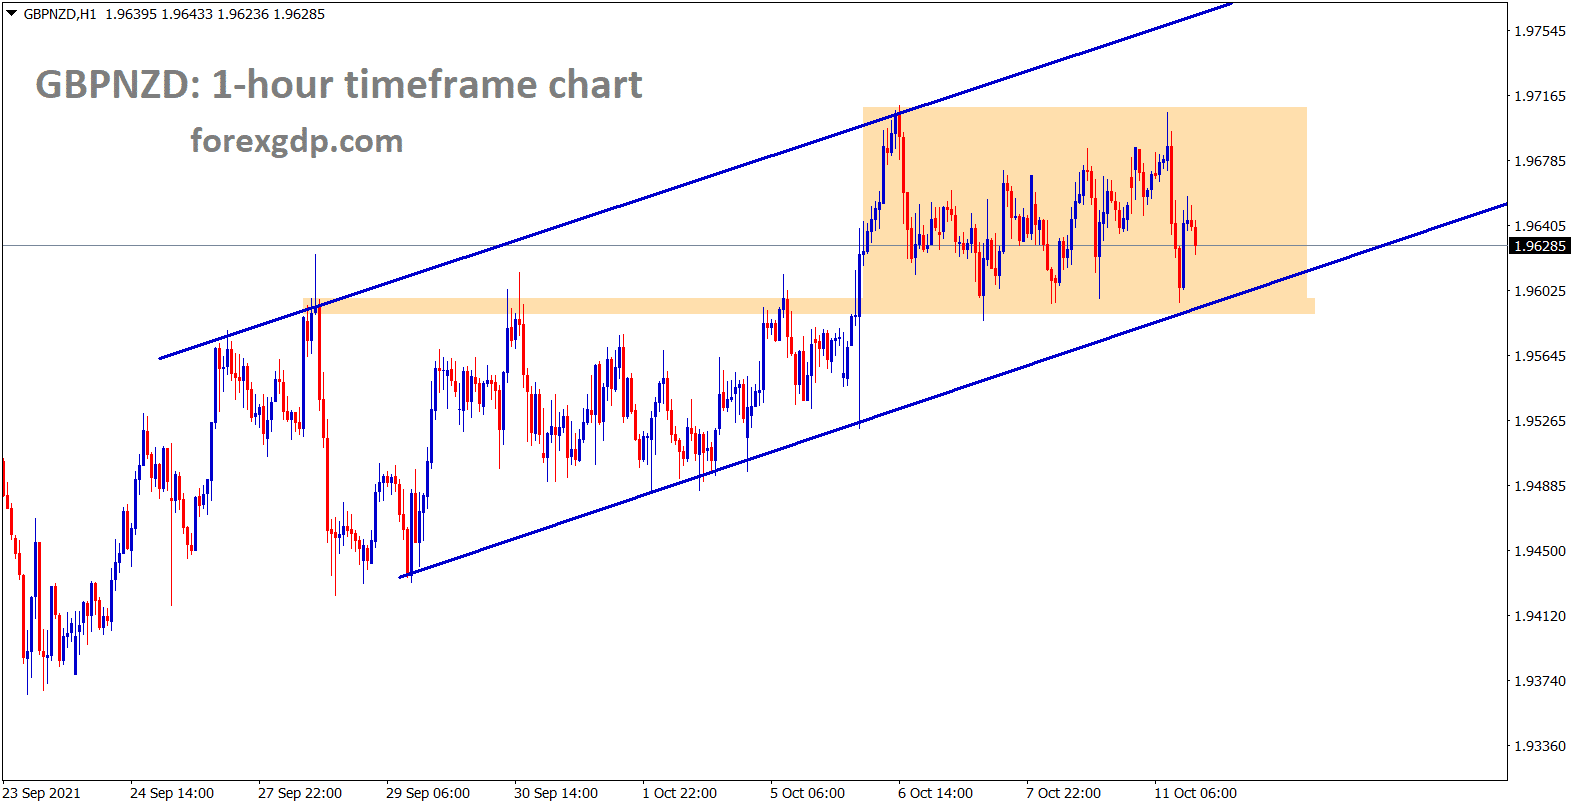 GBPNZD is consolidating in the ascending channel wait for ascending channel breakout to catch the big movement on GBPNZD